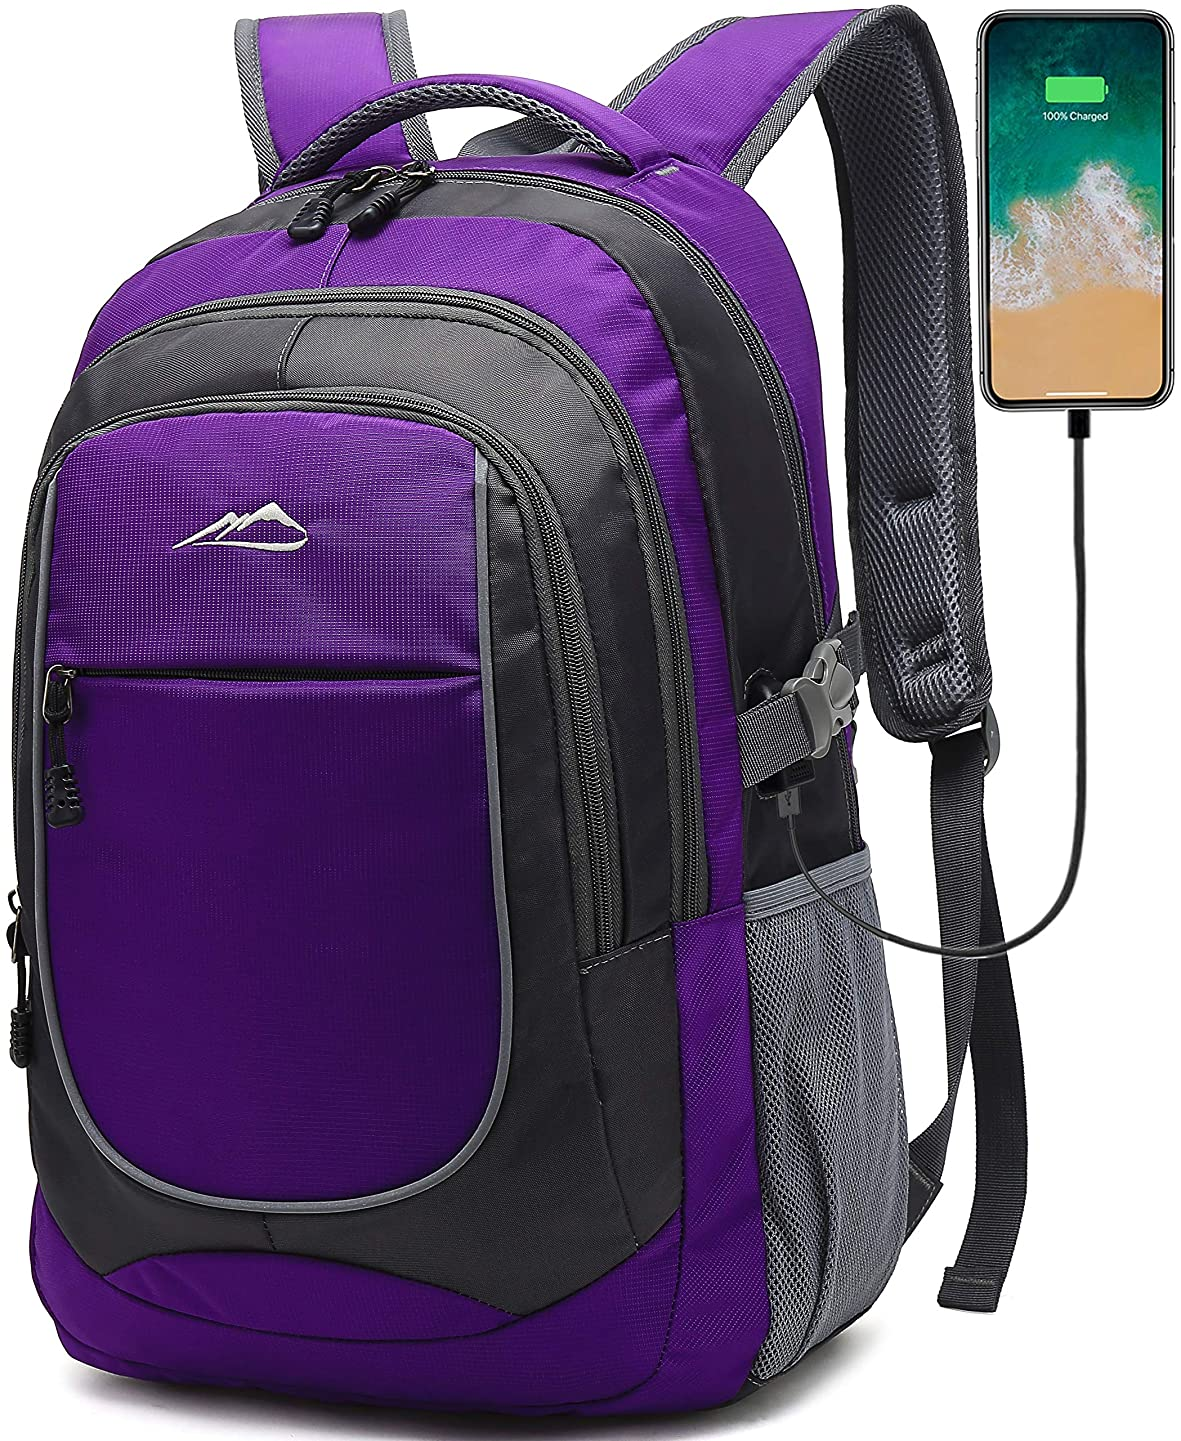 Backpack Bookbag for School Student College Business Travel with USB Charging Port Fit Laptop Up to 15.6 Inch Night Light Reflective Anti Theft (Purple)